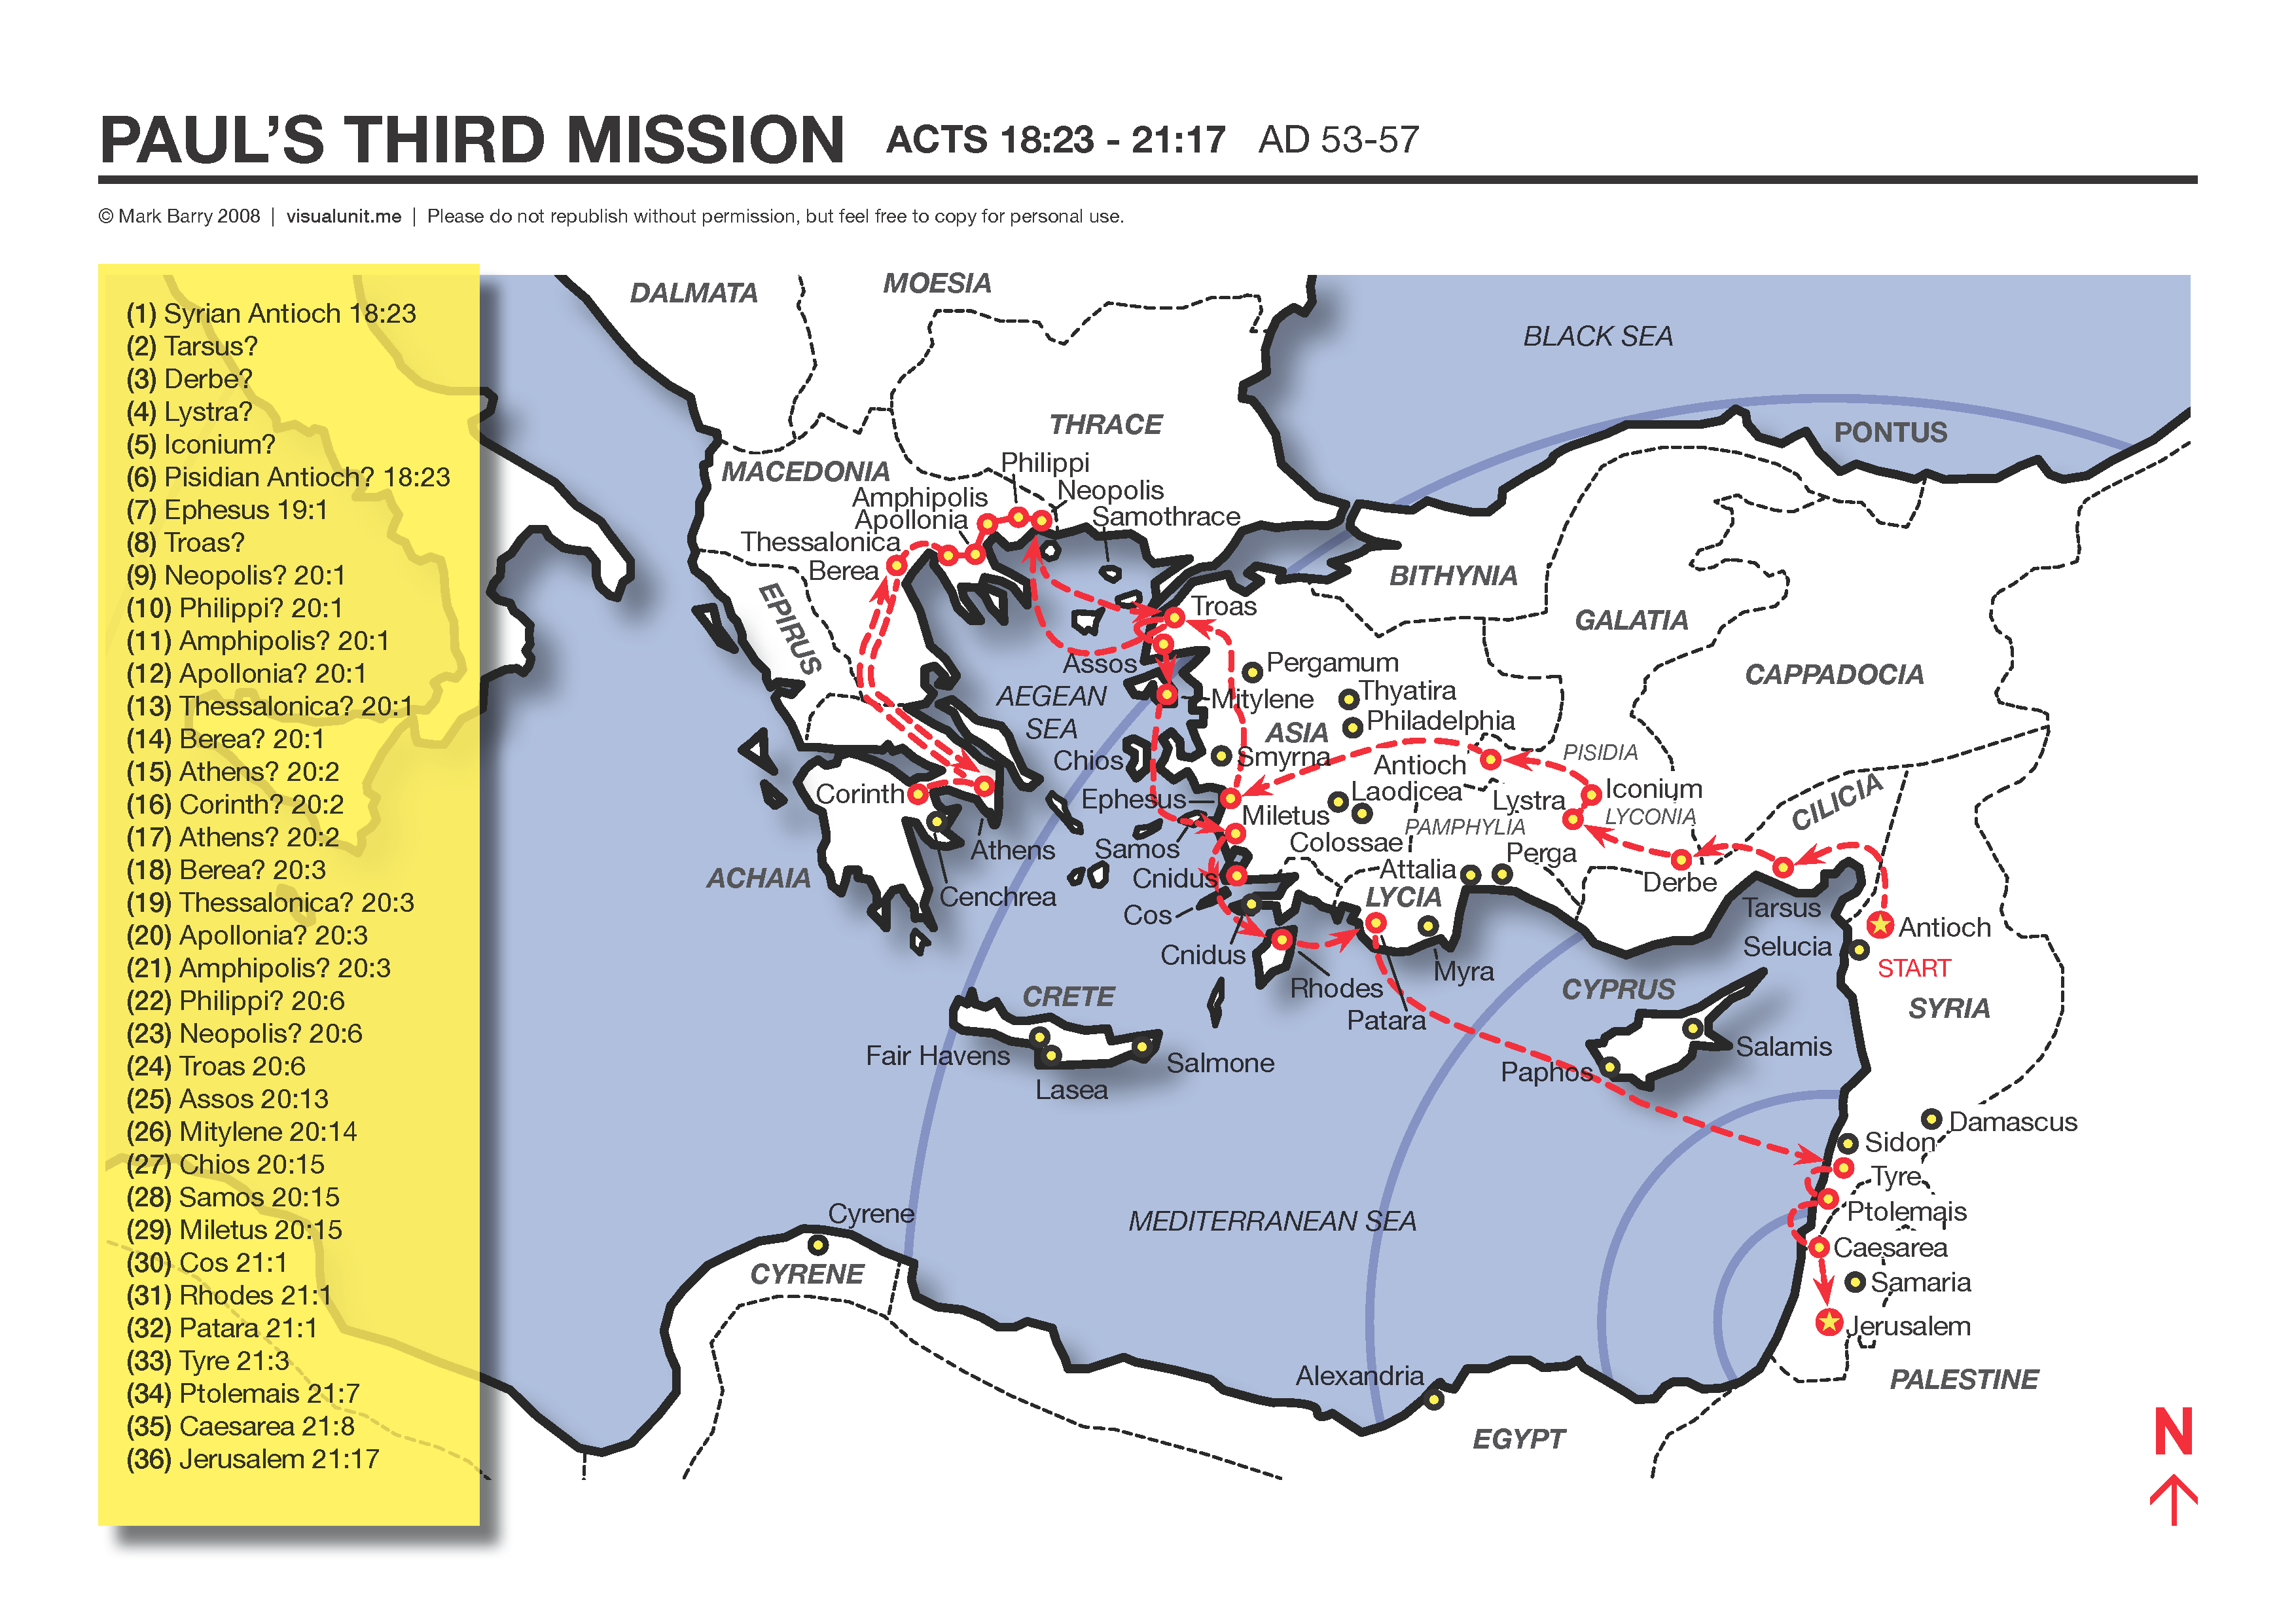 A map showing the apostle Paul s third missionary journey Acts 18